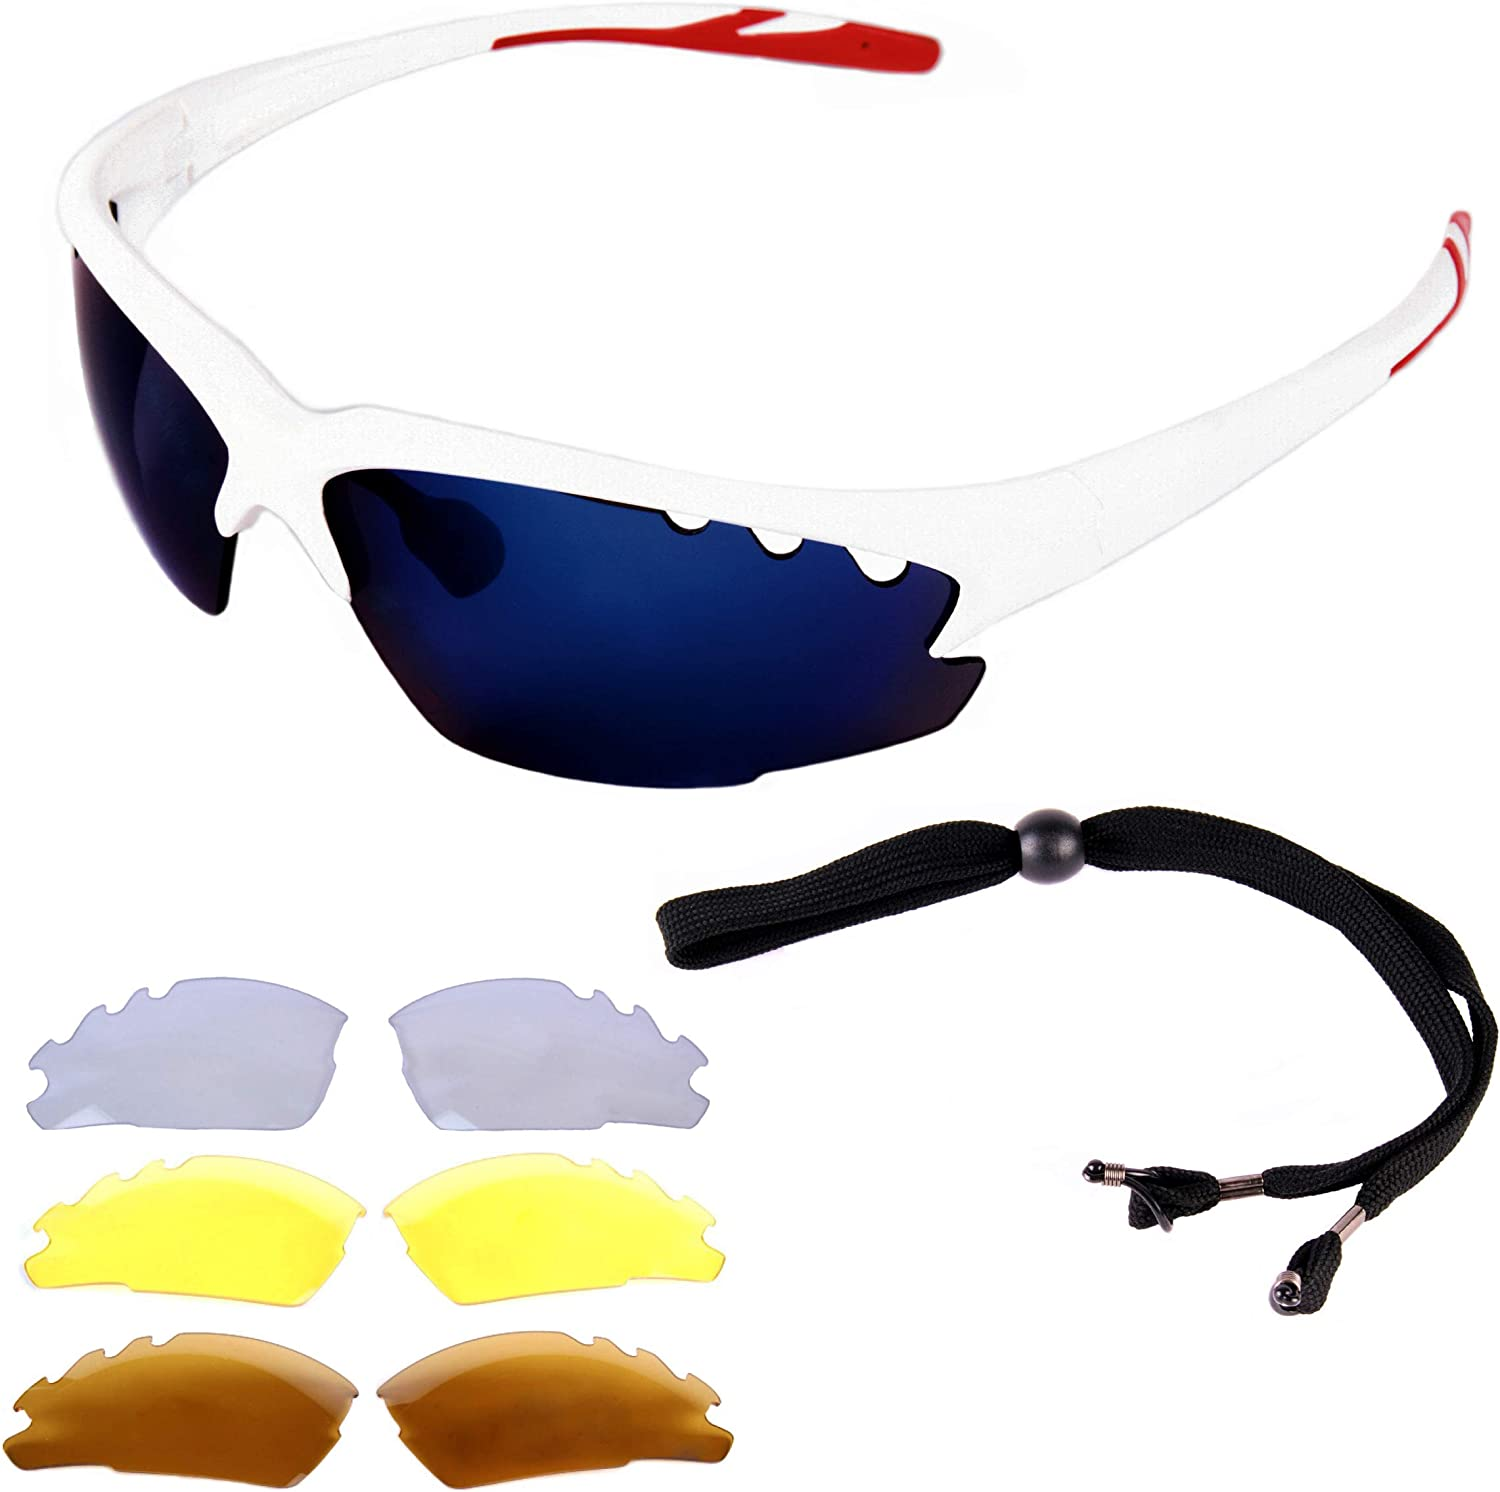 Rapid Eyewear White CYCLING SUNGLASSES